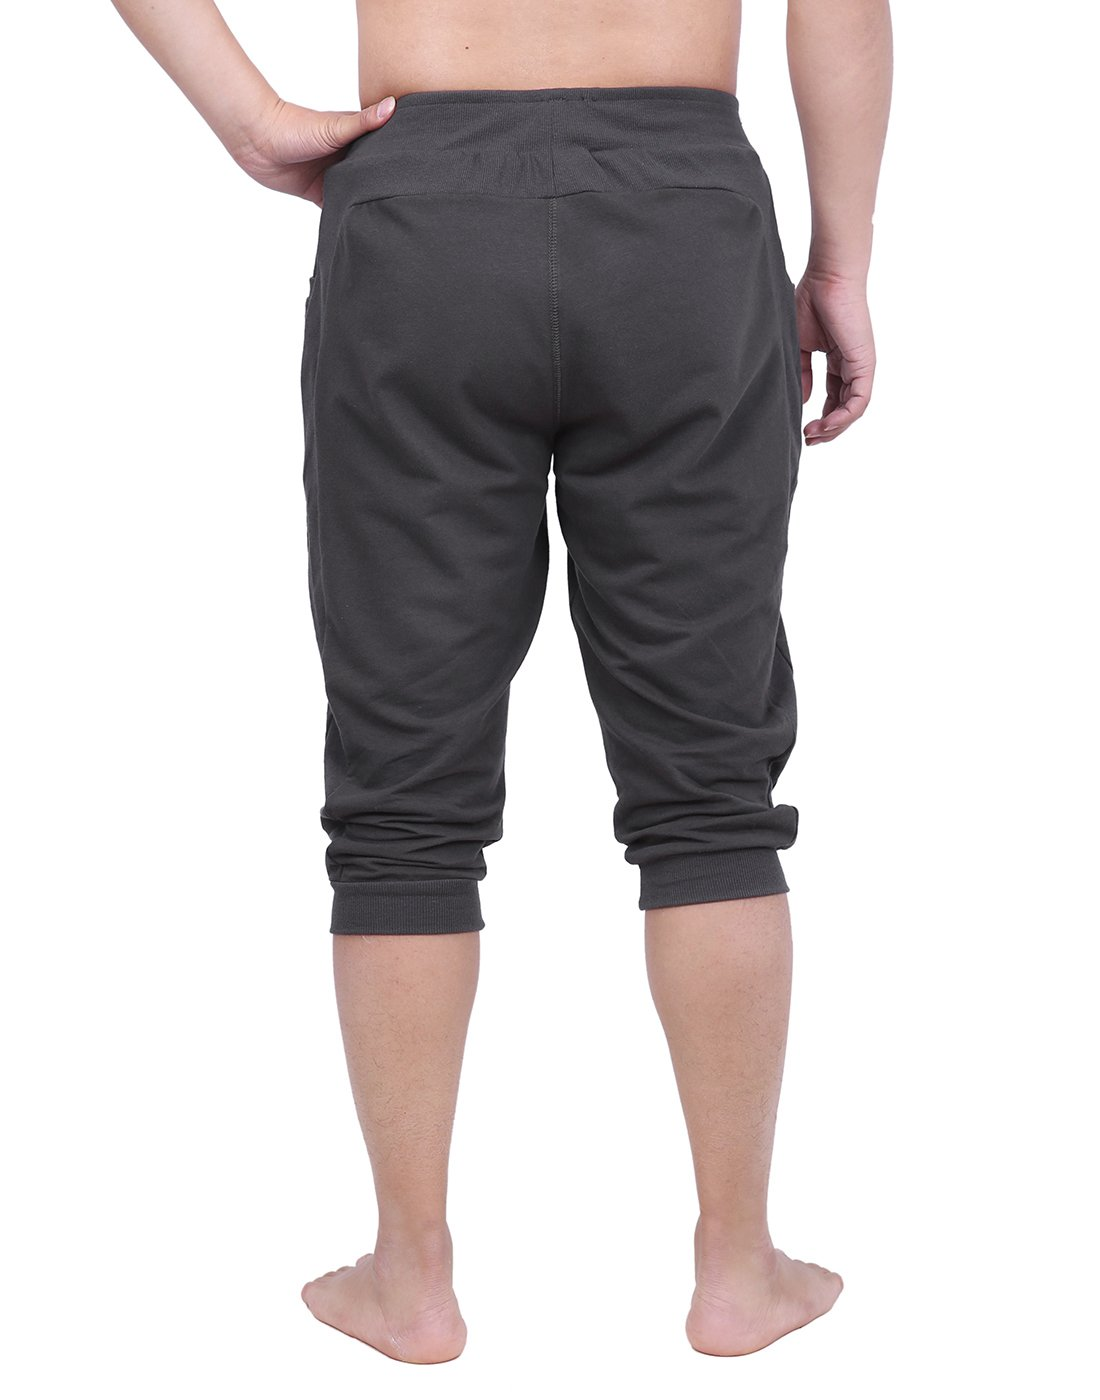 HDE Mens Workout Jogger Casual Waistband Sport Training Cuffed Yoga Capri Pant (Charcoal, Small) by HDE (Image #4)